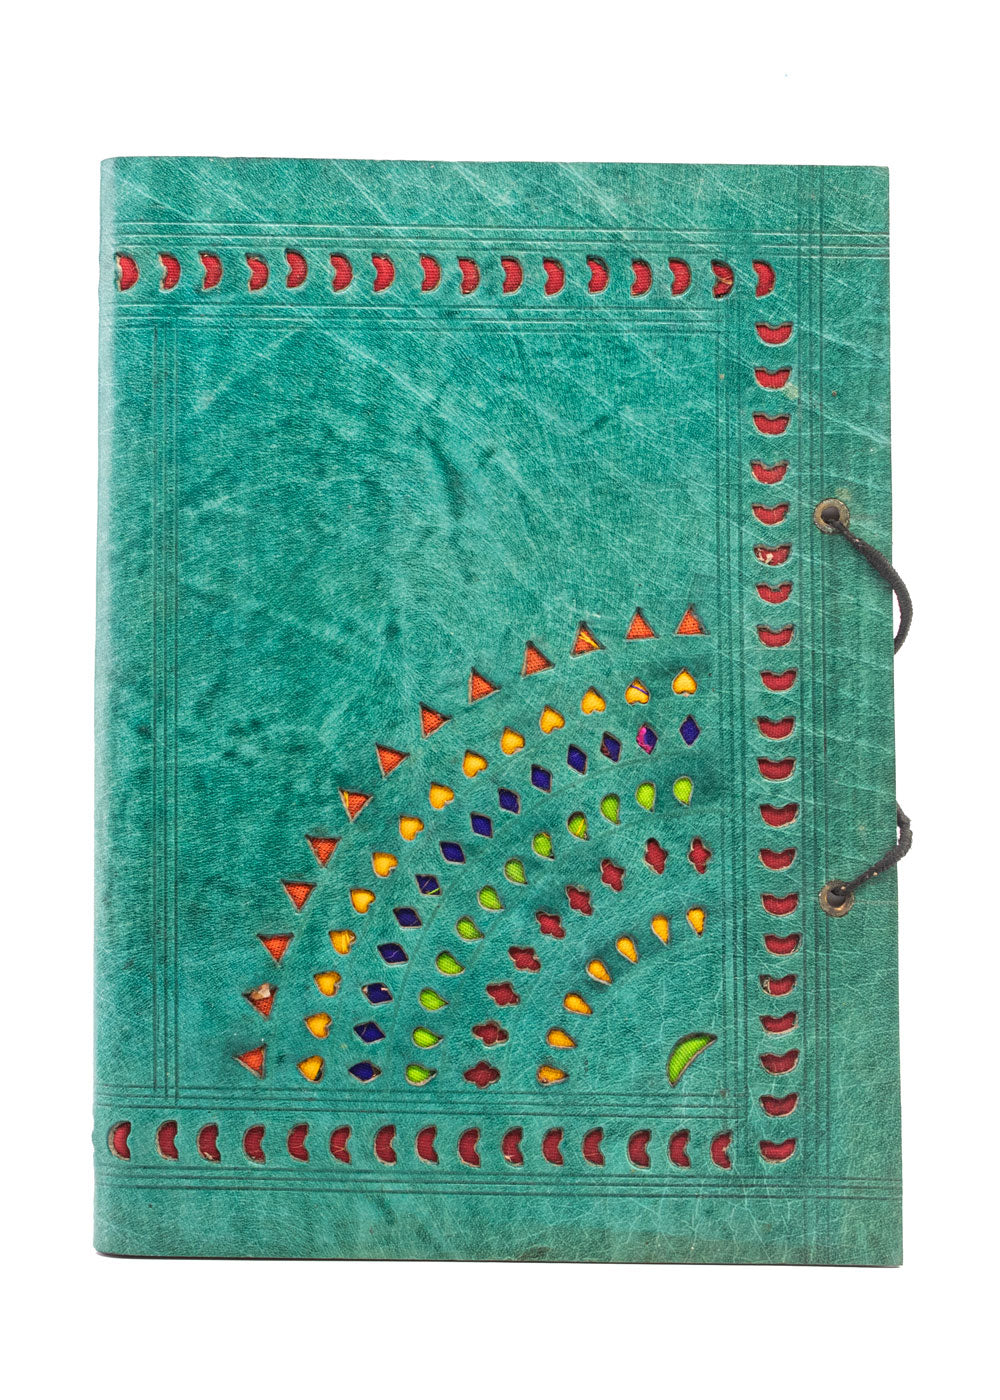 Studio Salvage Crafts Punch Leather Journal - Teal / Green